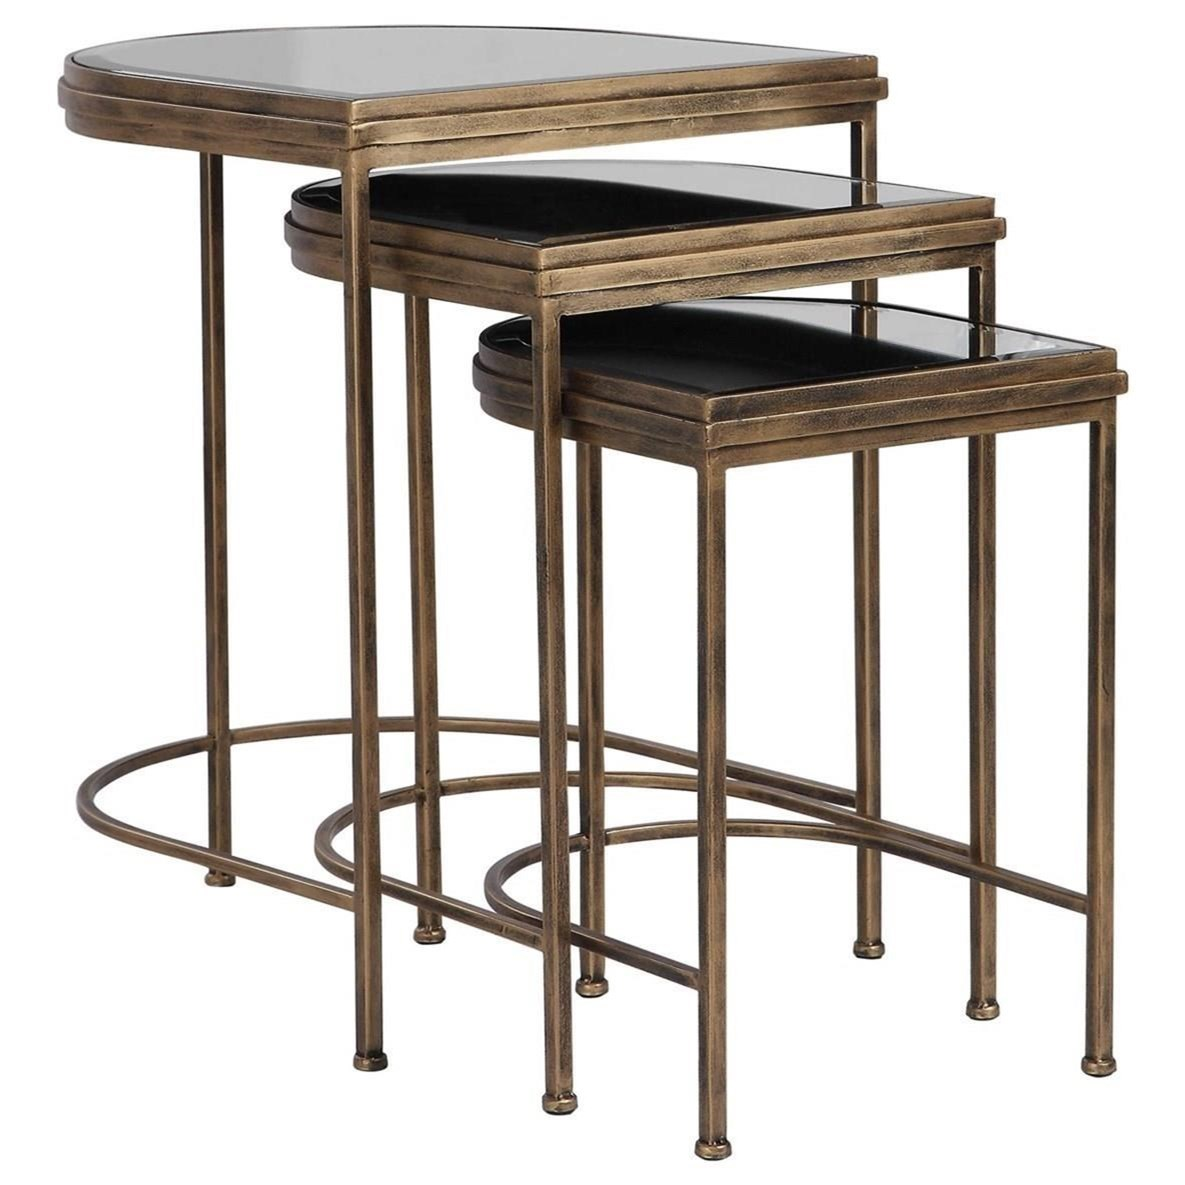 Accent Furniture - Occasional Tables India Nesting Tables, Set/3 by Uttermost at Goffena Furniture & Mattress Center